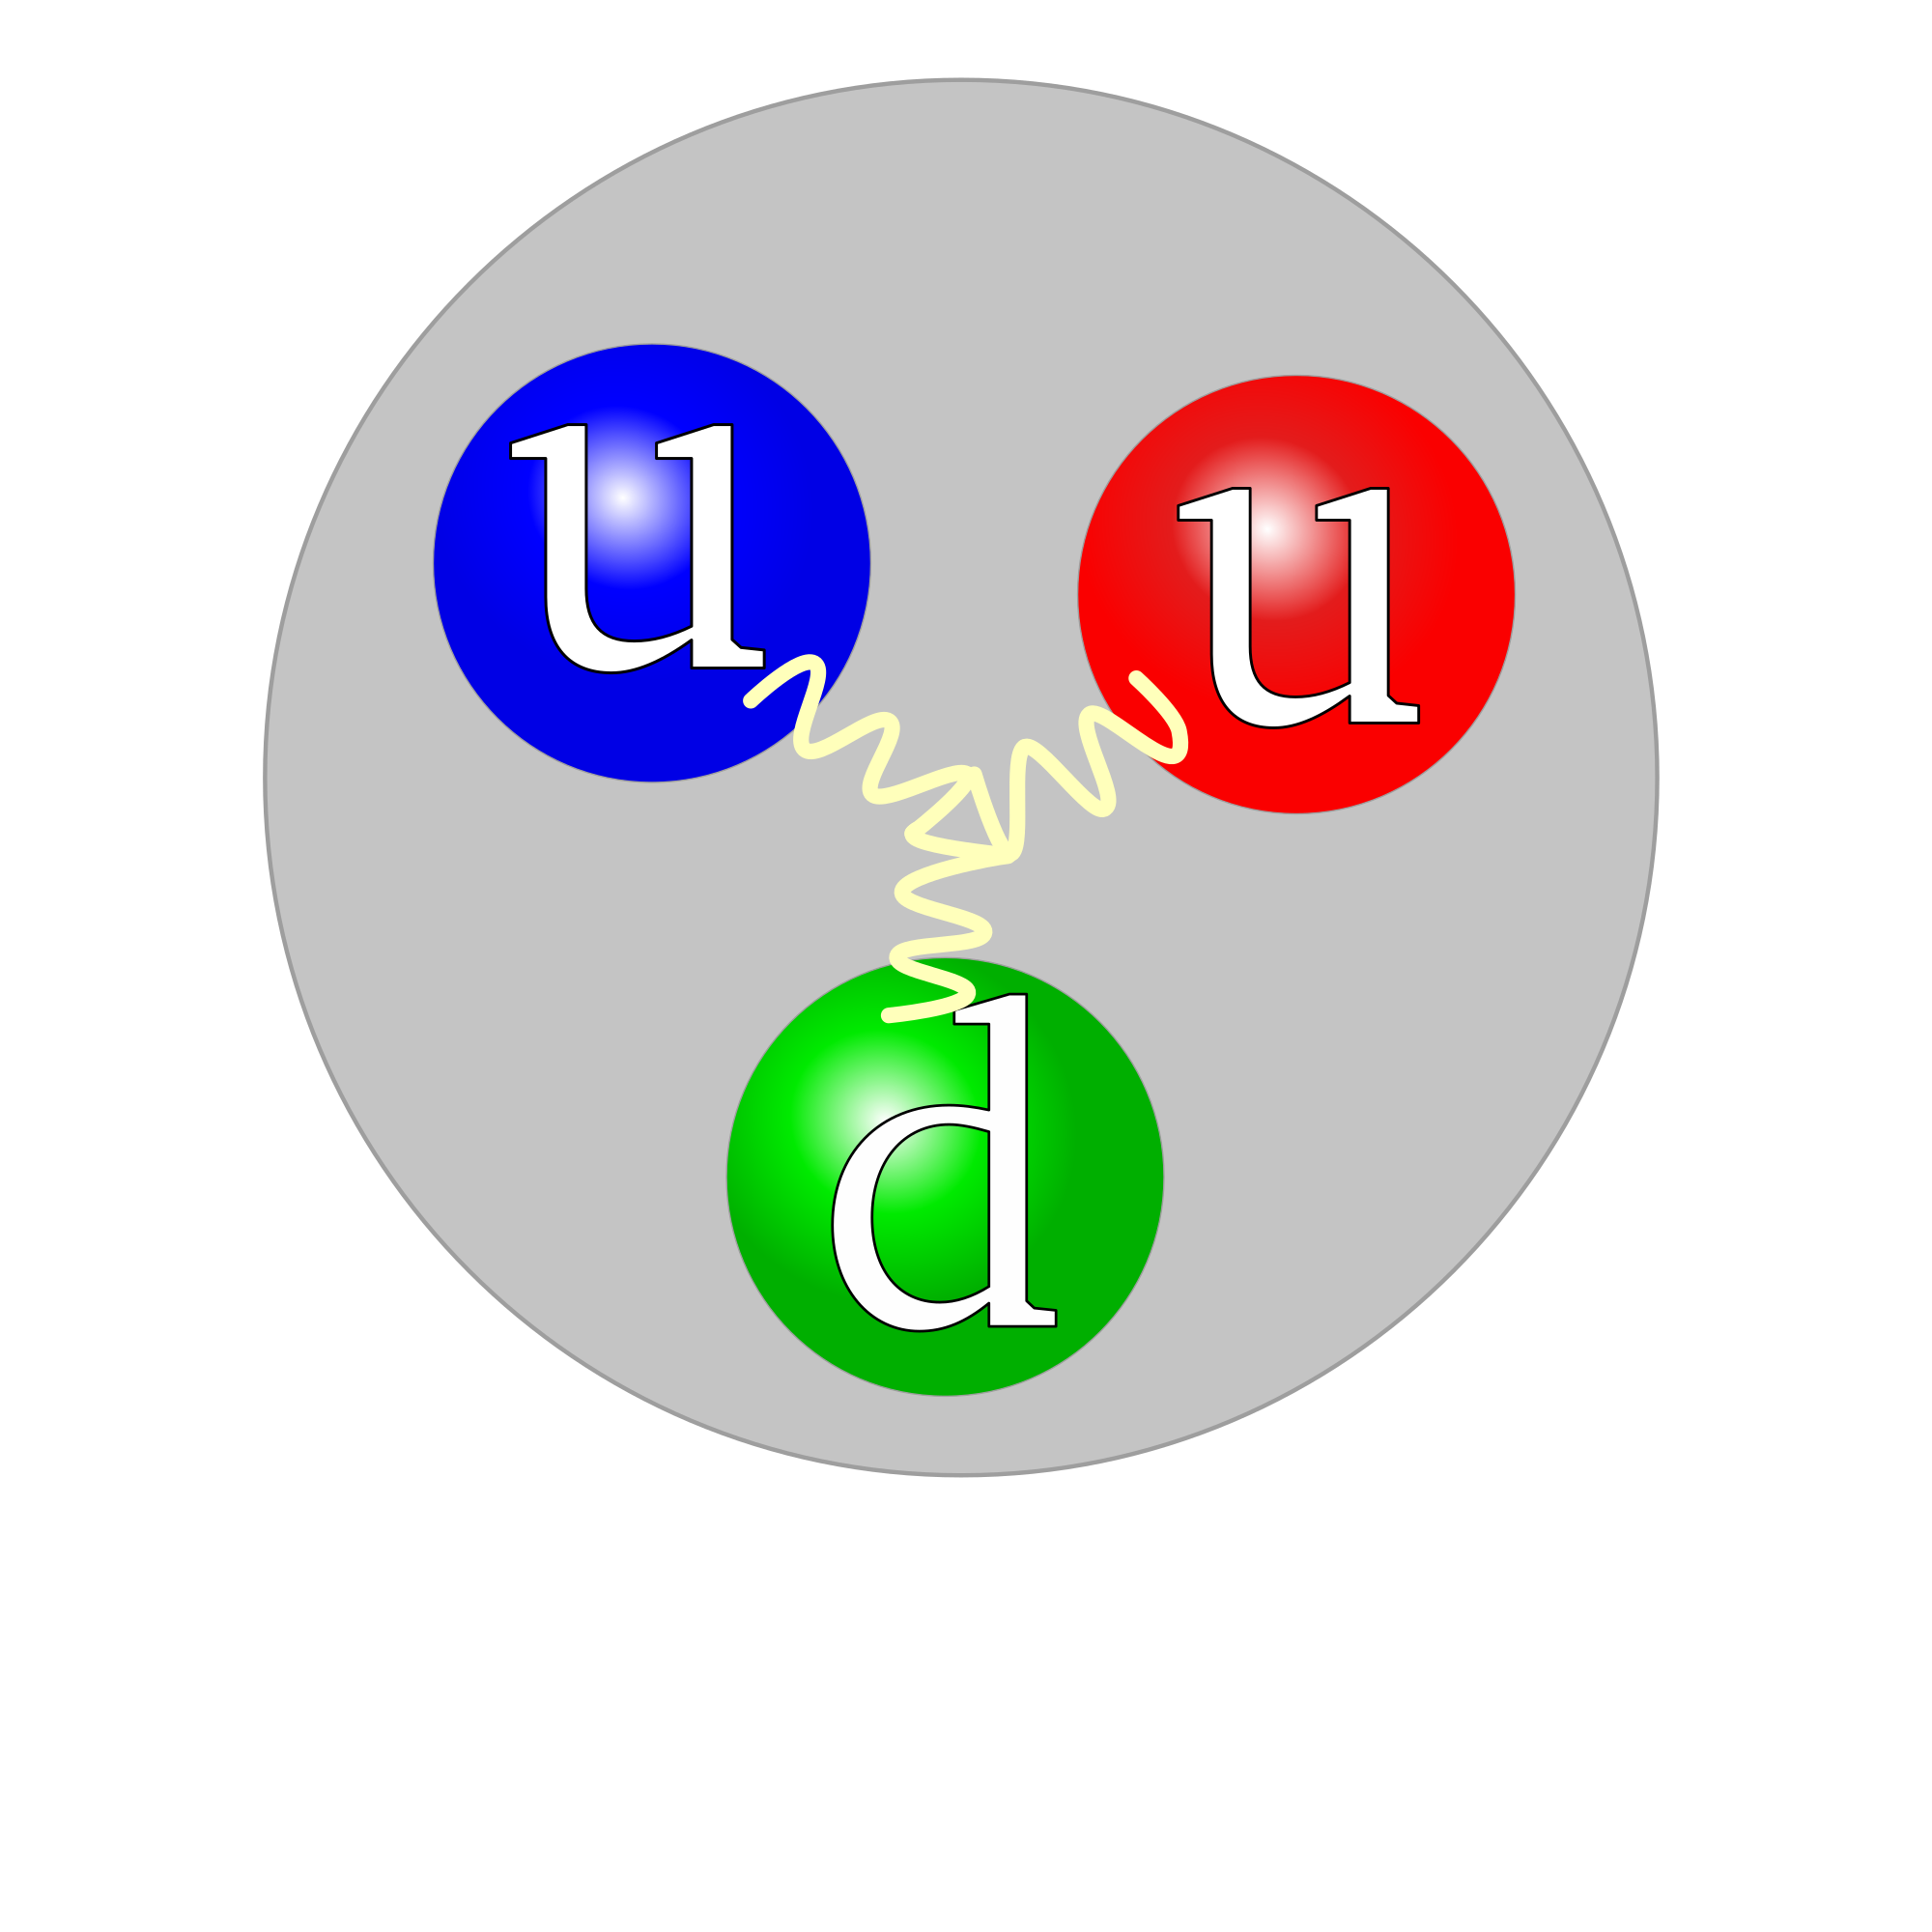 Vector syntax colored lighted. Quark wikipedia three balls